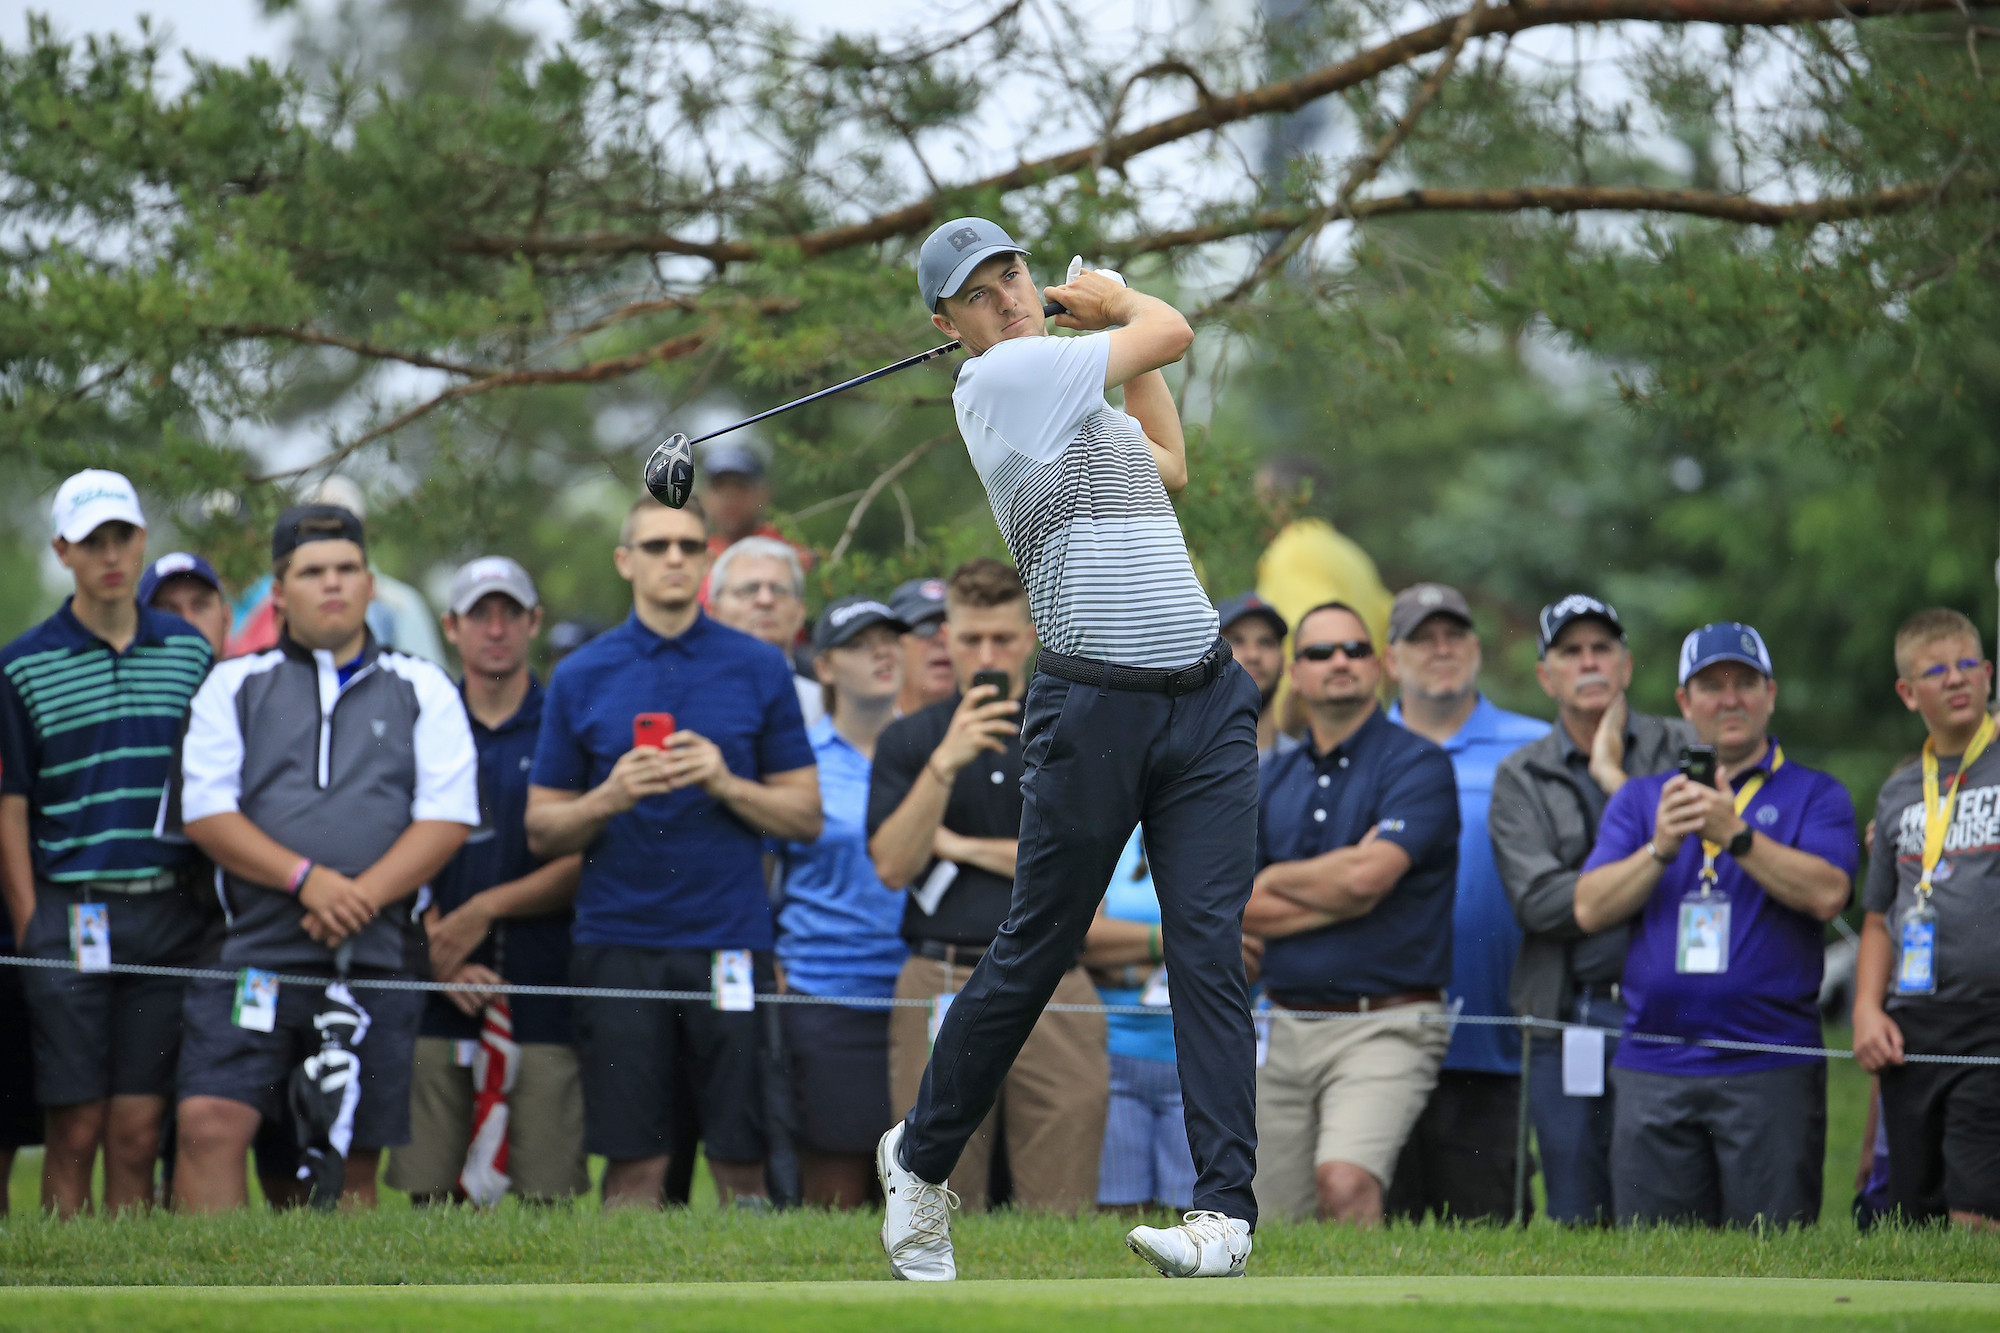 The 2019 Memorial Tournament: Round 1 - Teeing Off on No. 11